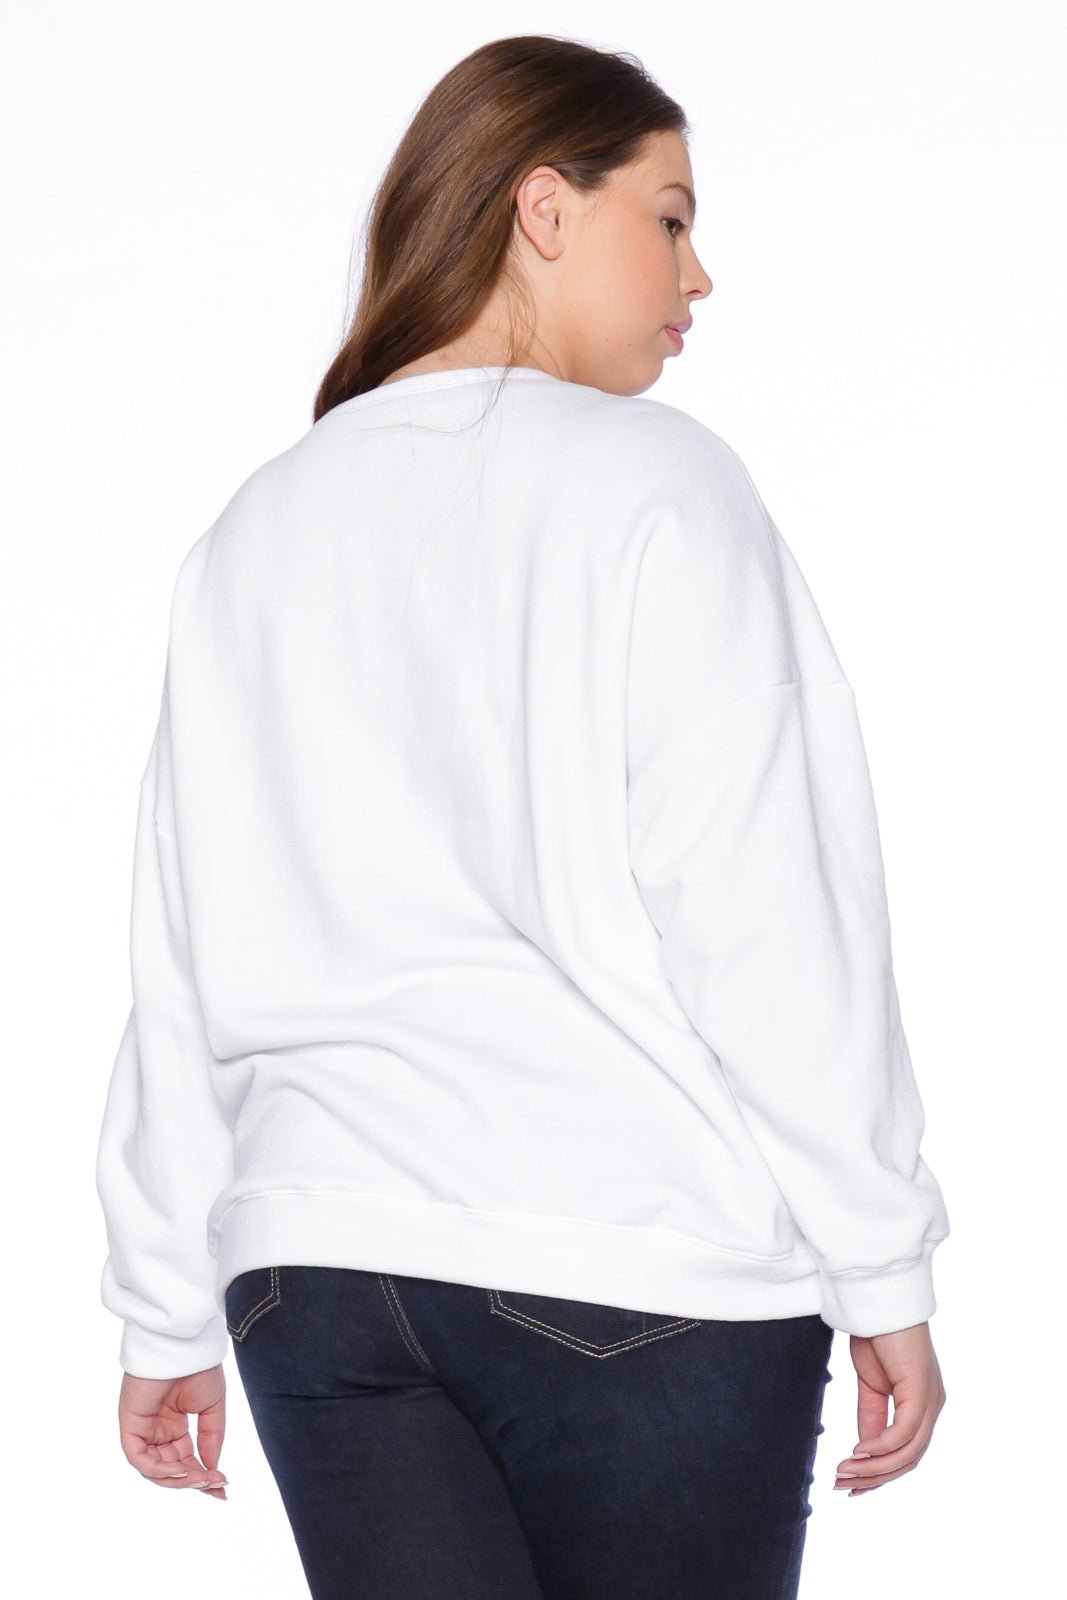 Not Fake Crewneck - WHITE